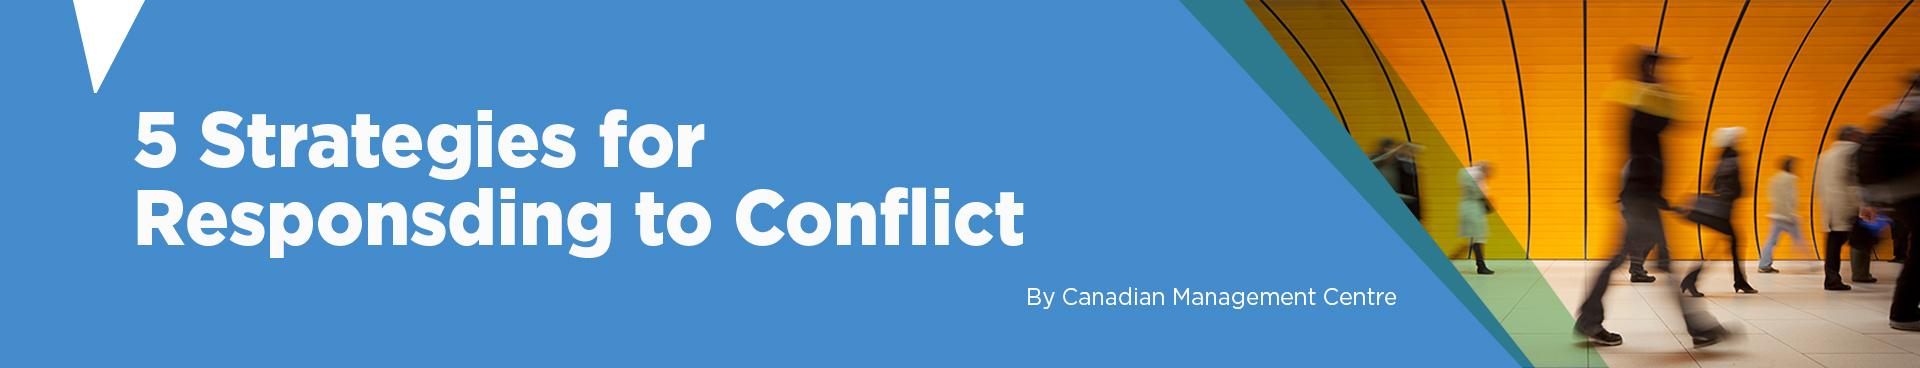 banner for responding to conflict article